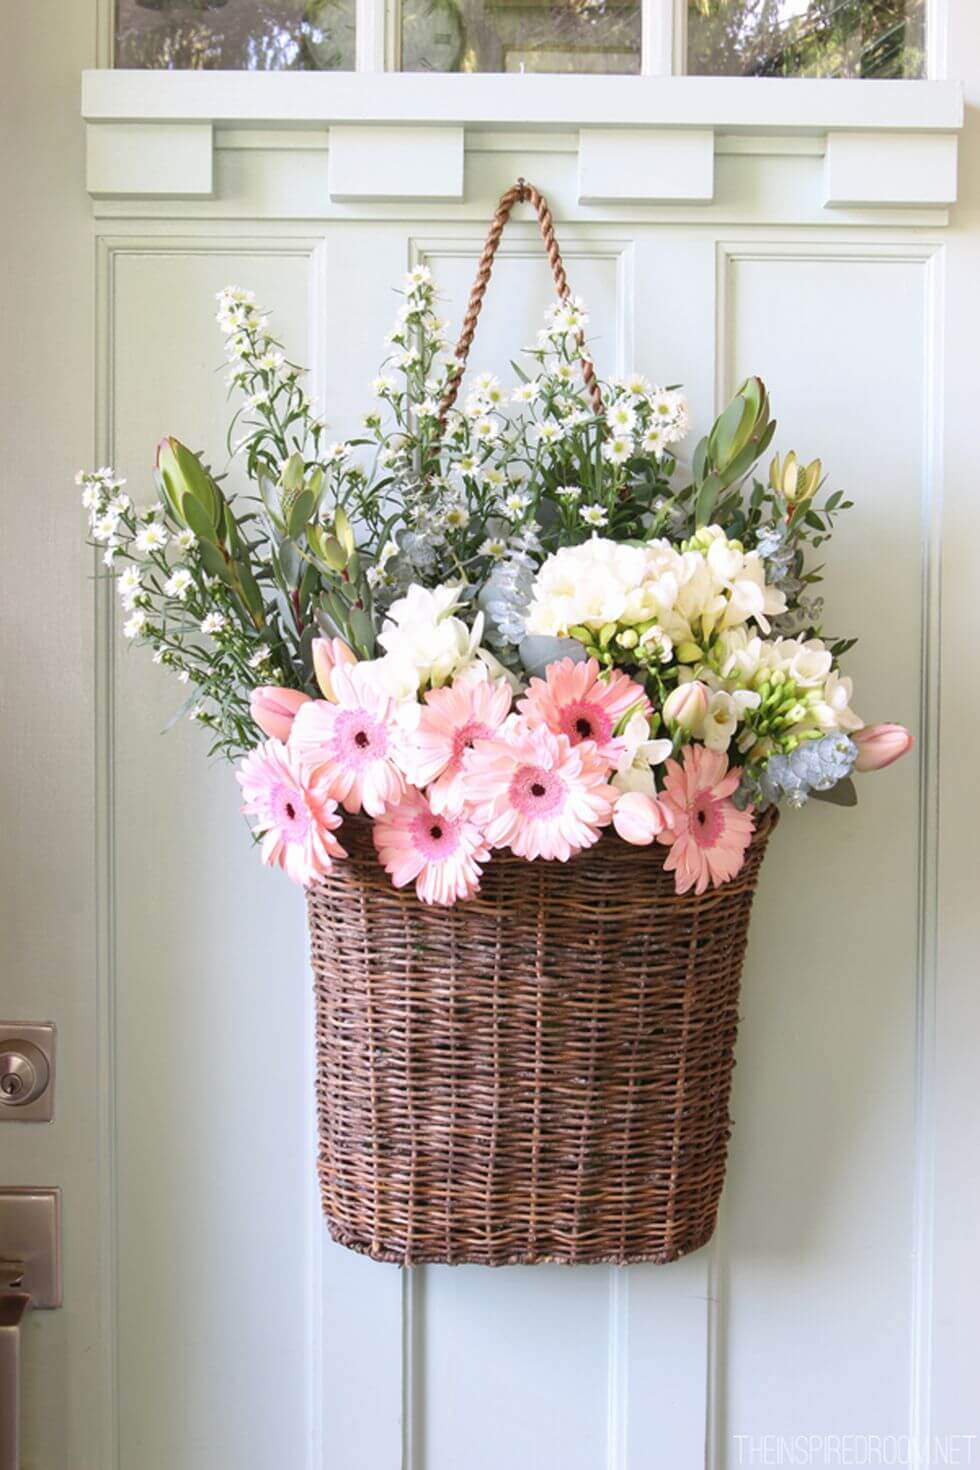 Old Fashioned Hanging Flower Basket